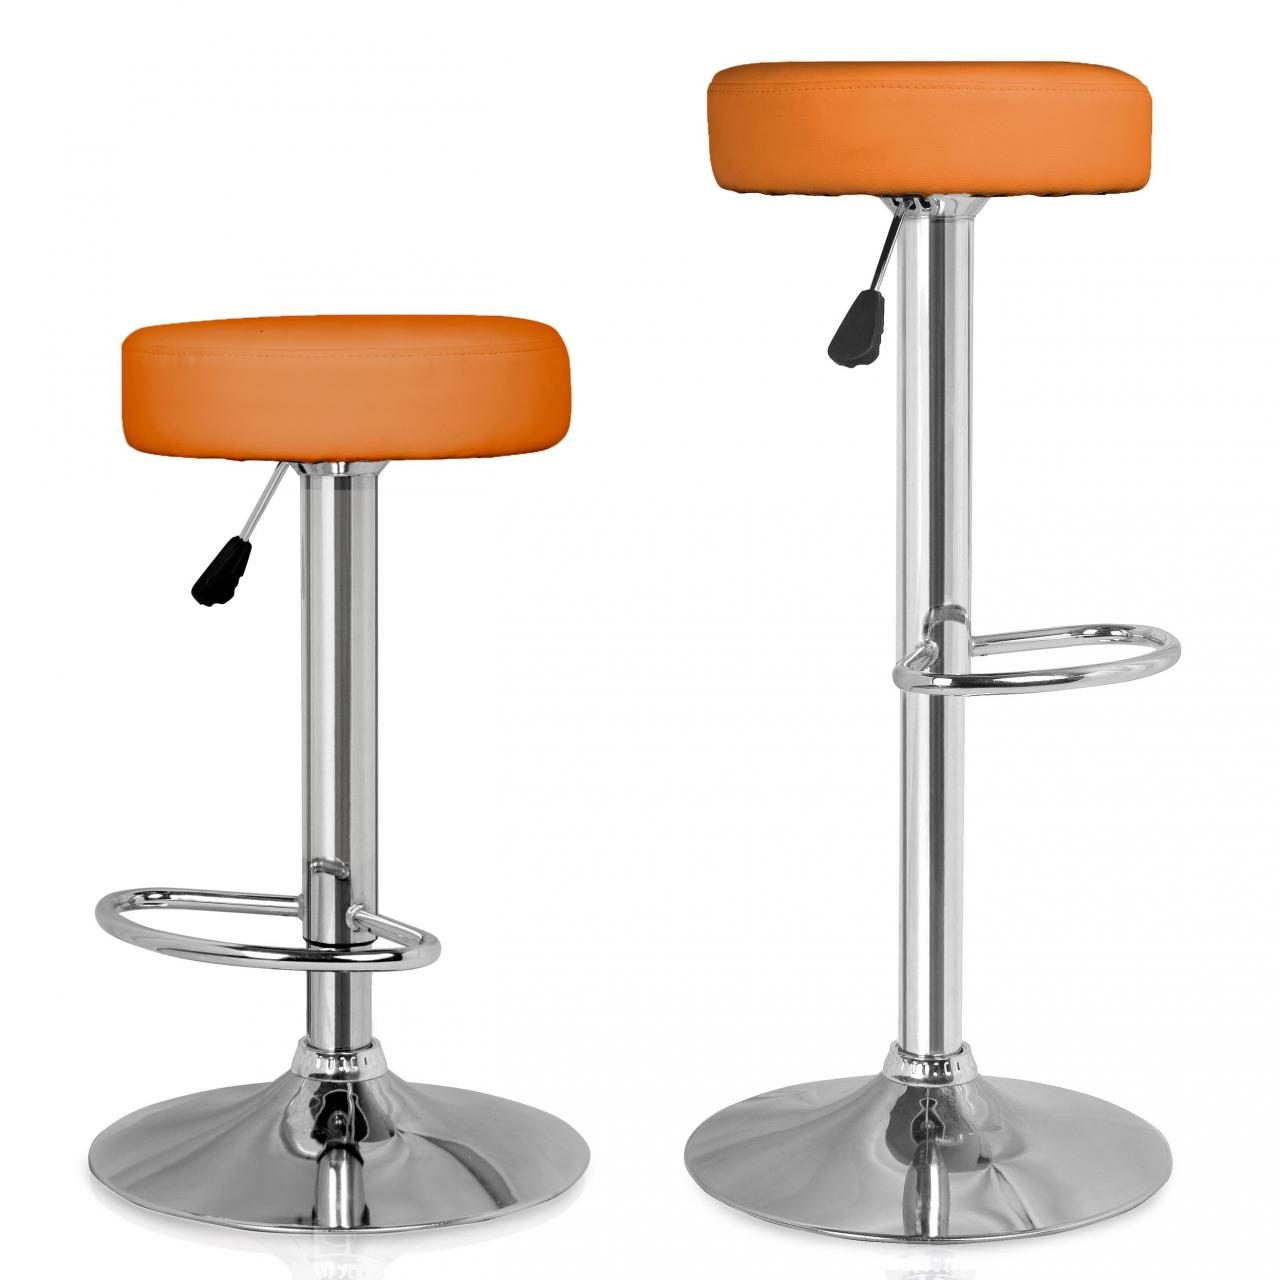 Bar Stool Set of 2 Faux Leather Office Chair Kitchen  : BSCORANGE00 from www.ebay.co.uk size 1280 x 1280 jpeg 75kB